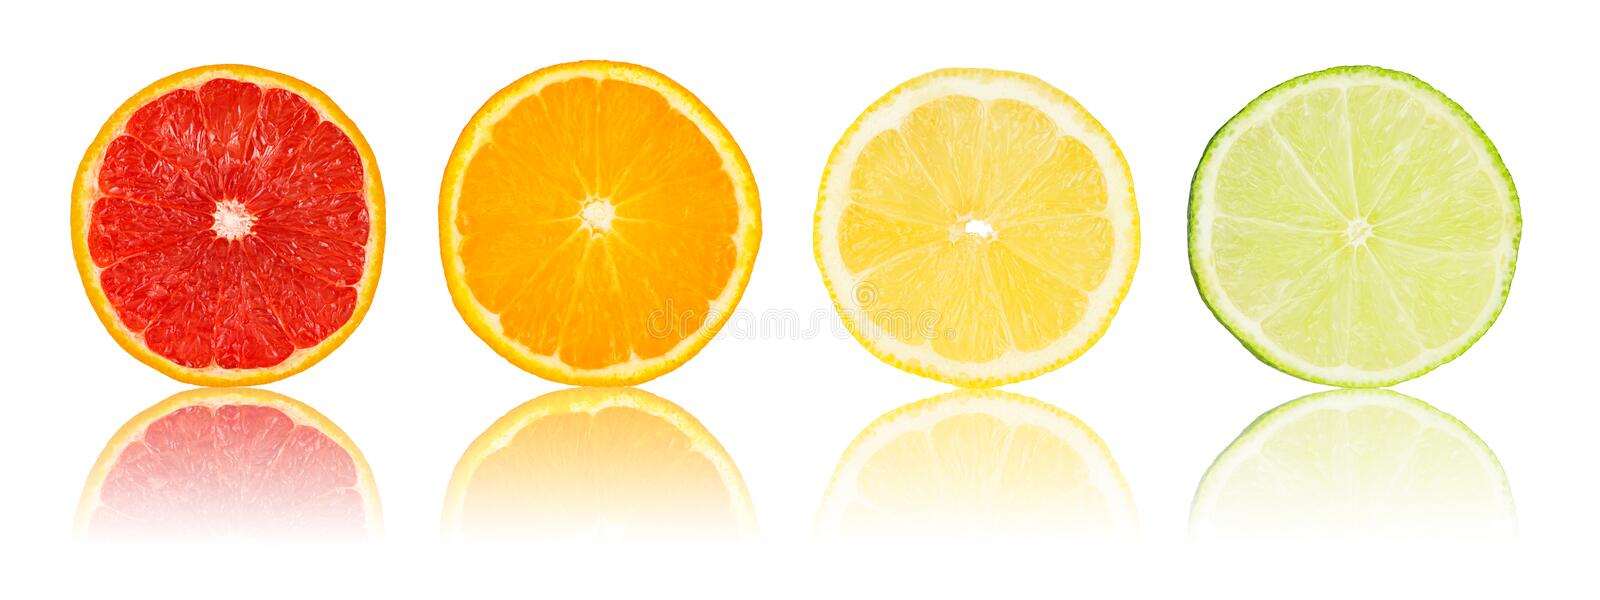 Row of various citrus slices. On white background stock photography